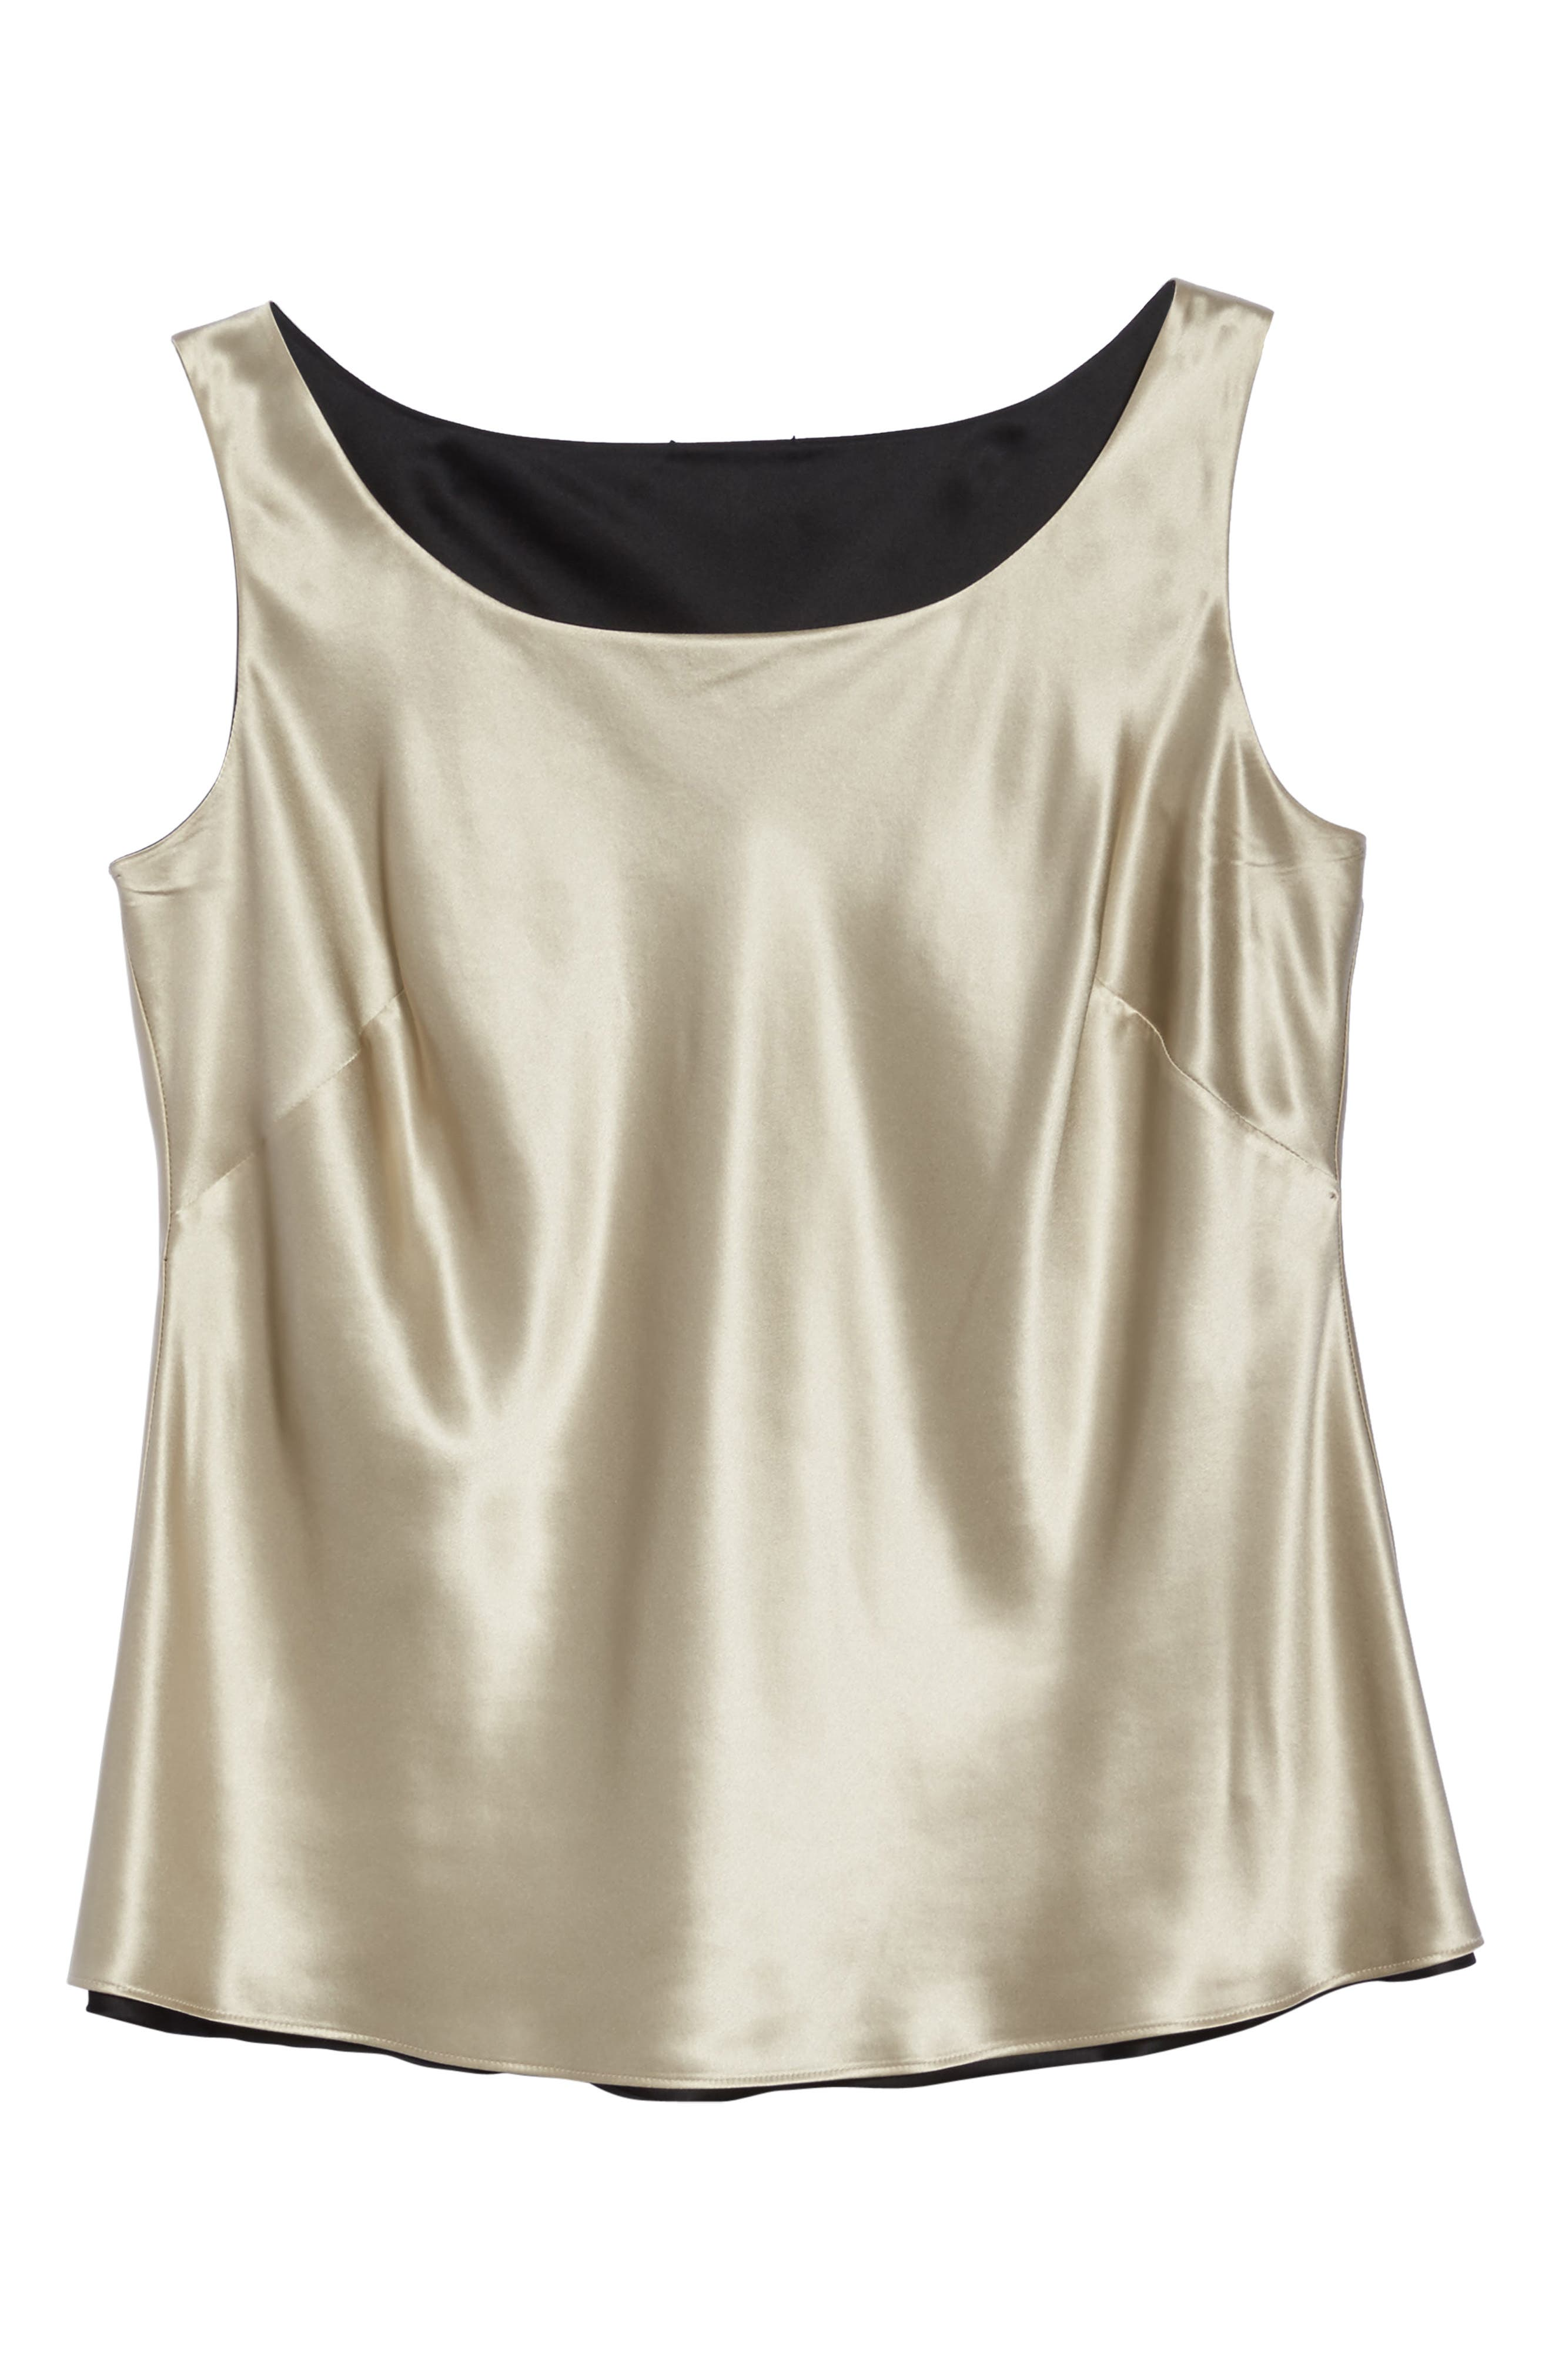 Reversible Silk Tank,                             Alternate thumbnail 6, color,                             Khaki/ Black